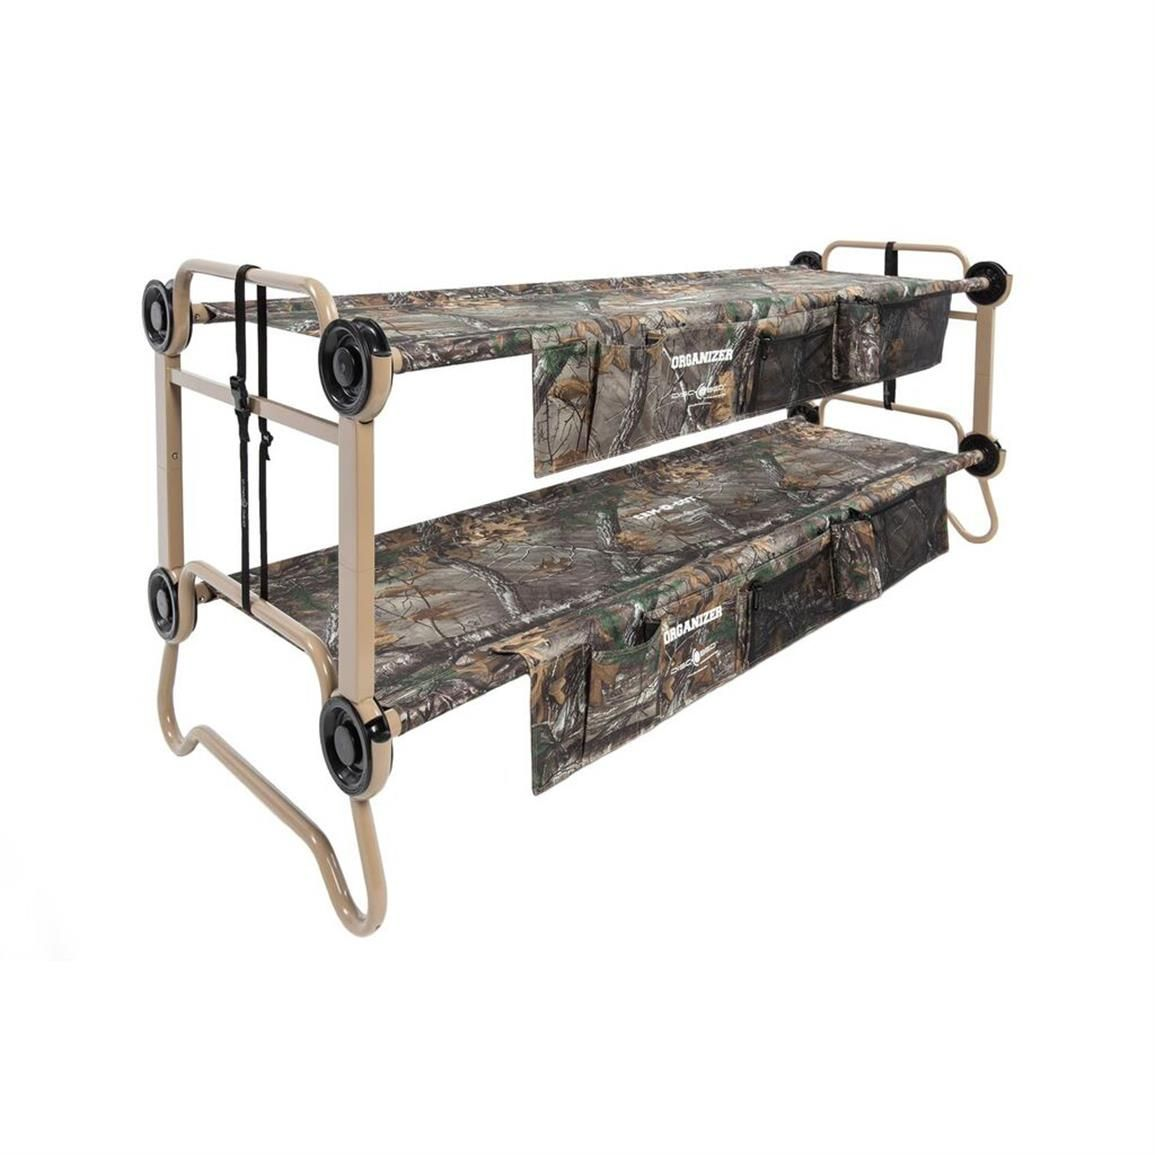 Large Cam O Bunk Portable Bed With Organizers In Realtree Xtra Camo Single BedsCamping CotCamping